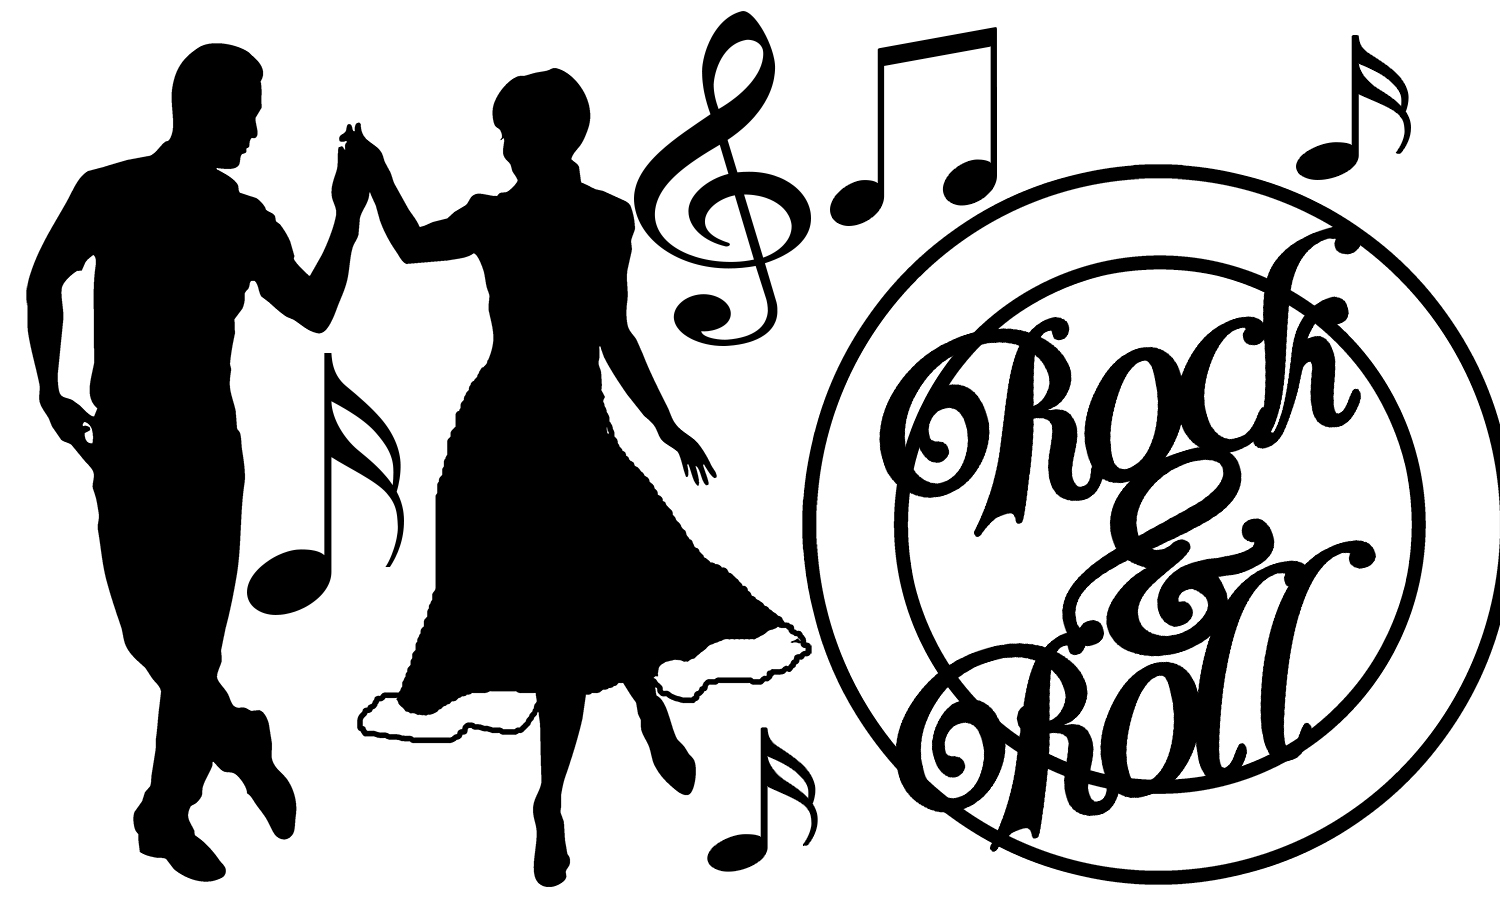 Rock and roll clipart black and white 7 » Clipart Station.